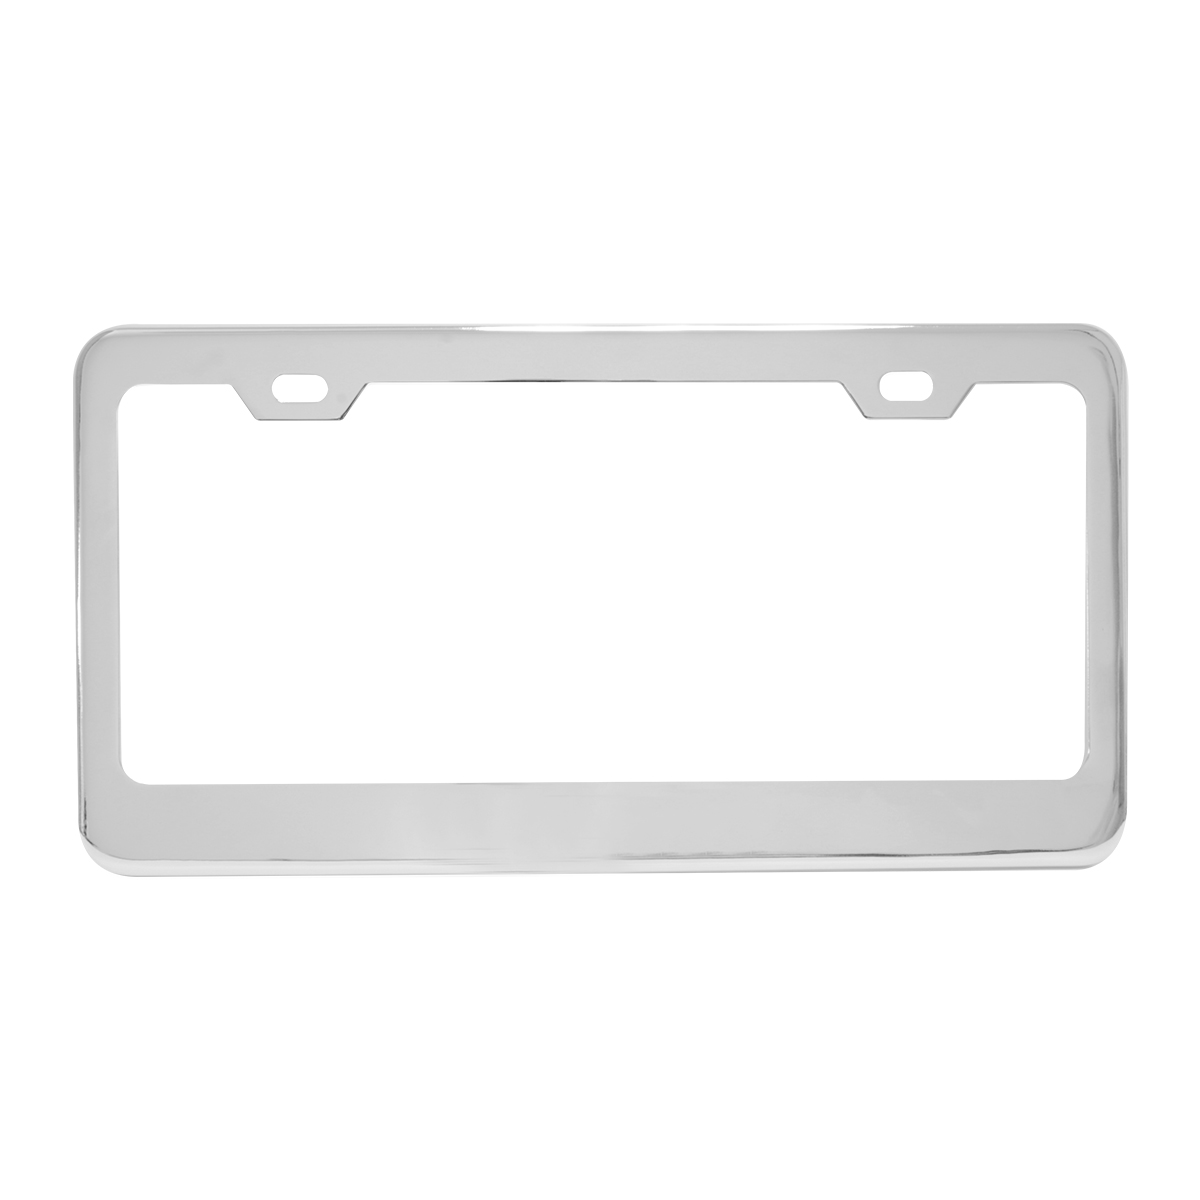 Plain Stainless Steel 2 Hole License Plate Frame